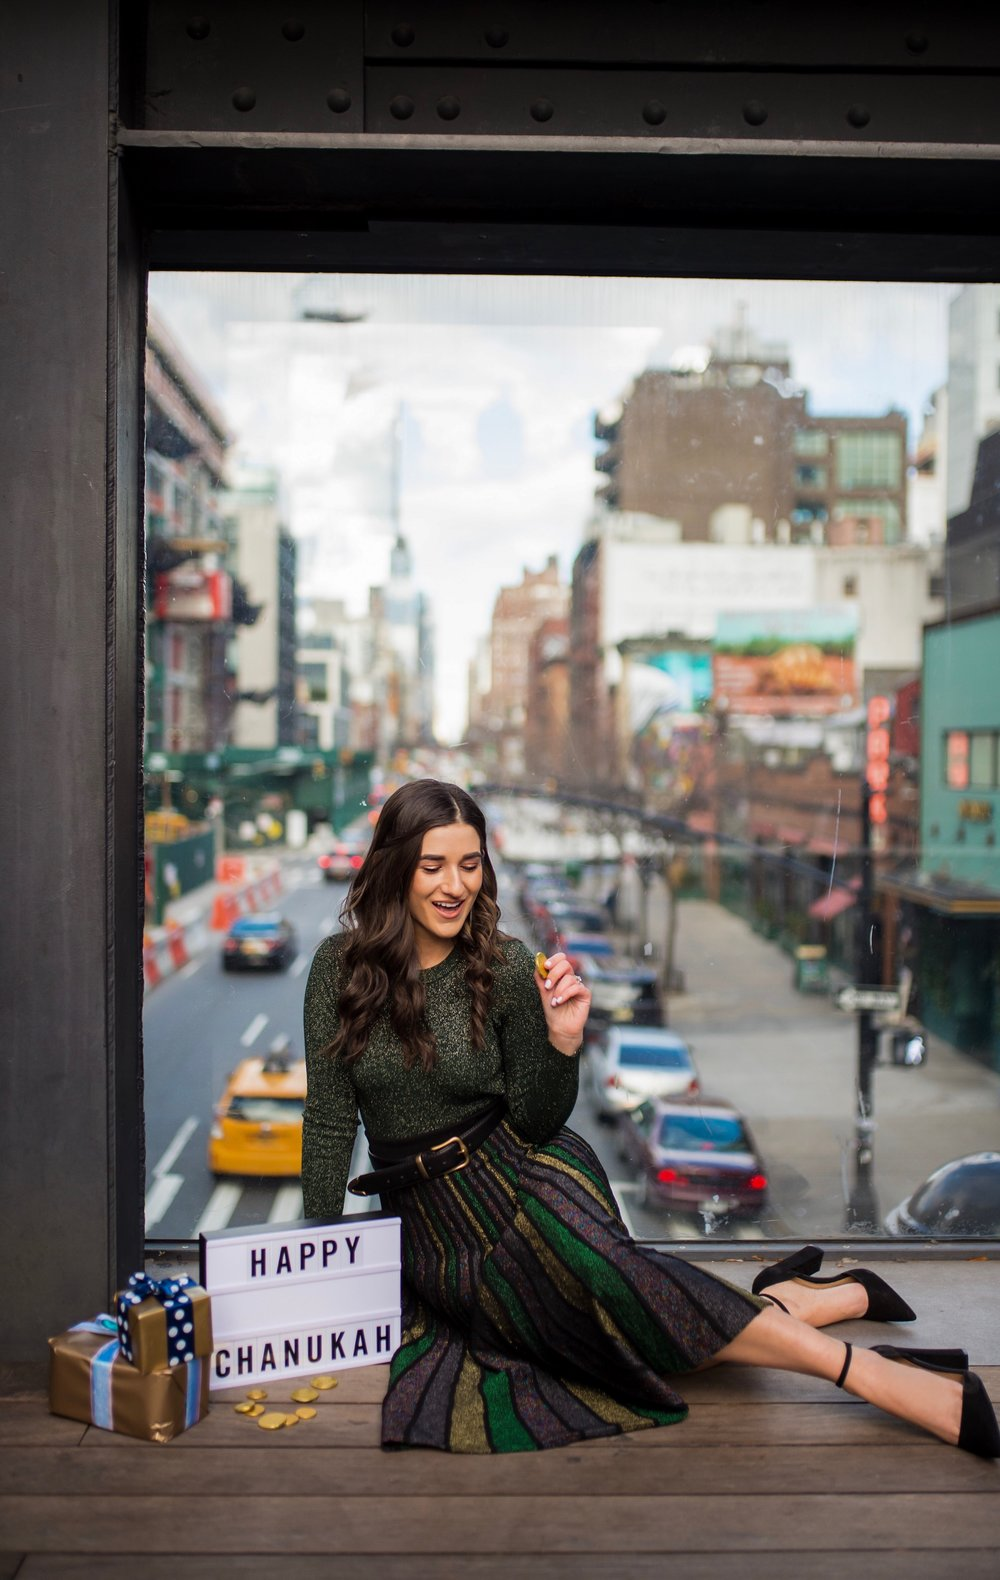 So You Wanna Talk About Diversity Don't forget me Esther Santer Fashion Blog NYC Street Style Blogger Outfit OOTD Trendy Shopping Miri Couture Laurel Creative Sparkles Midi Skirt Glitter Holiday Jewish Chanukah 2018 Green Top Long Sleeve Glitter Shirt.jpg